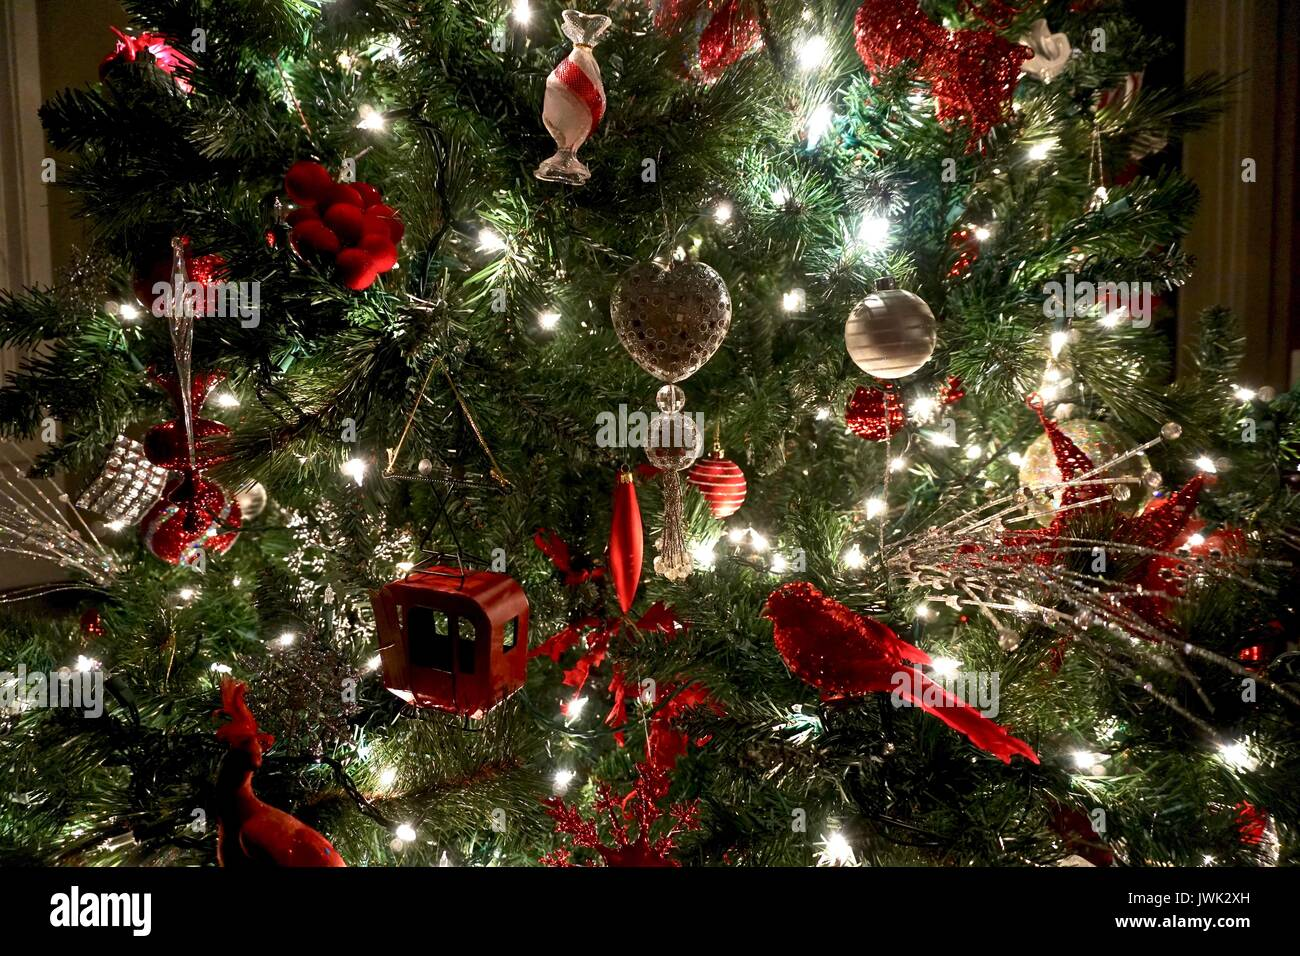 Close Up Of Red And Silver Christmas Tree Decorations On The Tree Stock Photo Alamy